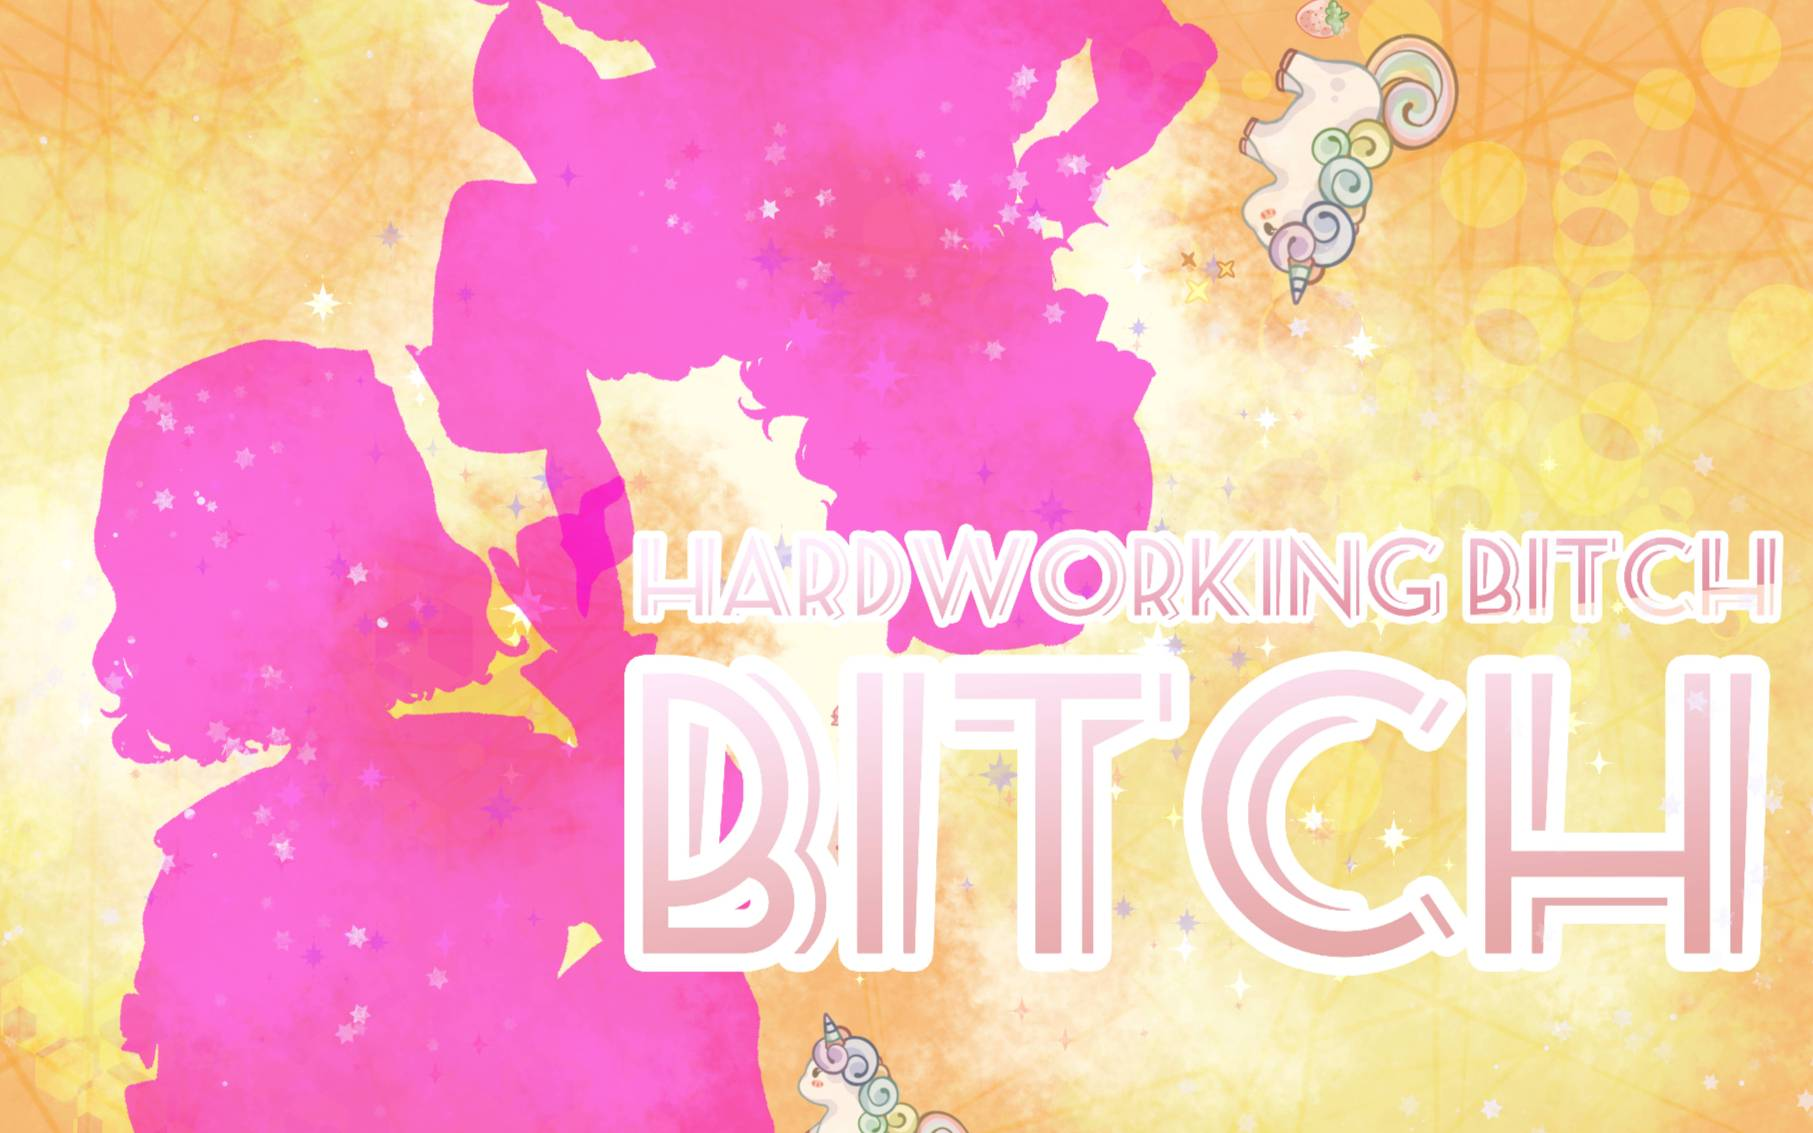 【唐茶xAkayilan懿岚】Hardworking Bitch『独家』